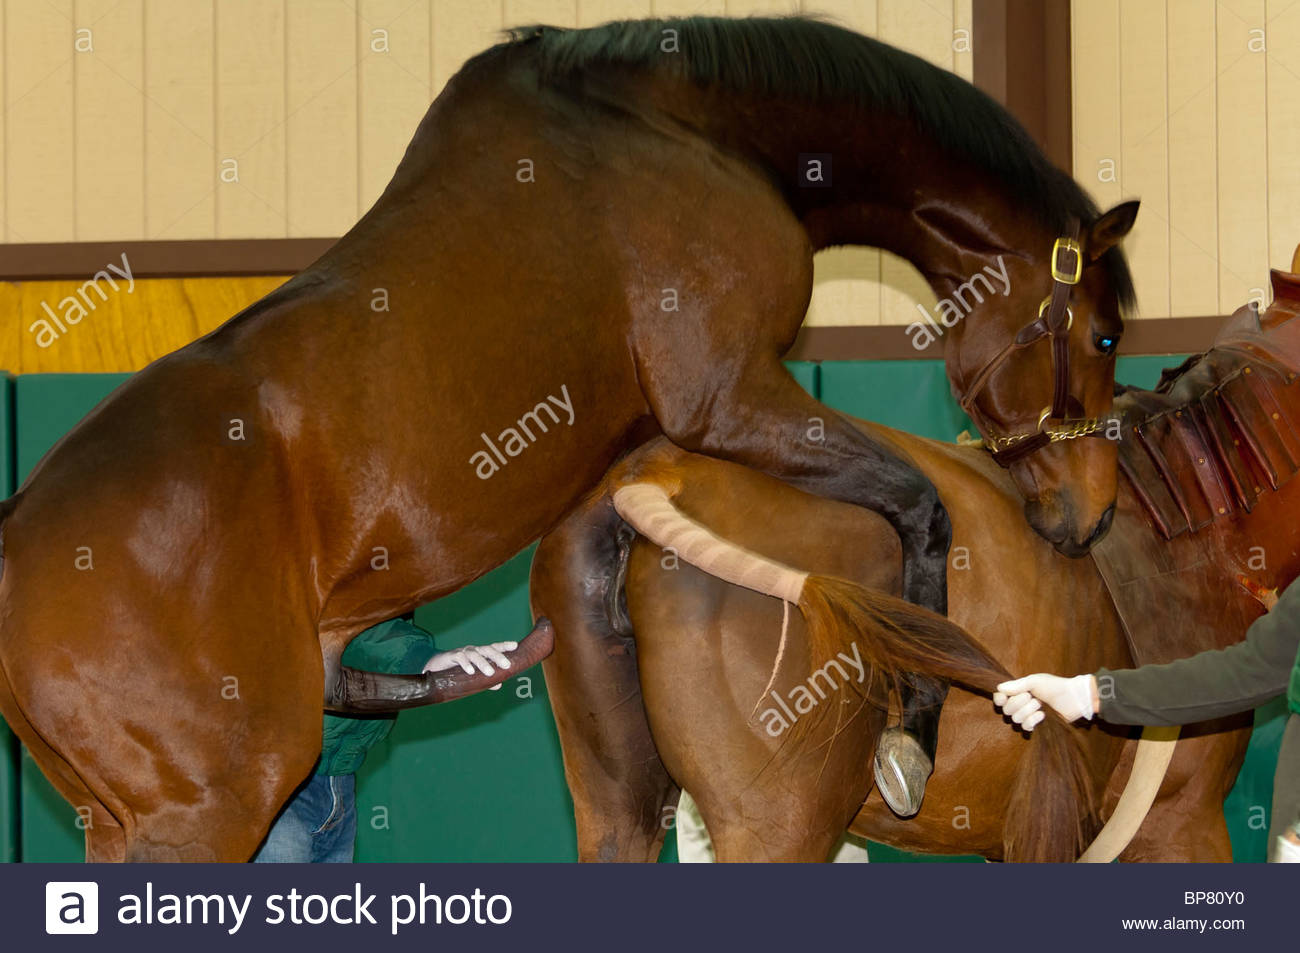 Breeding thoroughbreds, Winstar Farm, Versailles (near Lexington), Kentucky USA - Stock Image